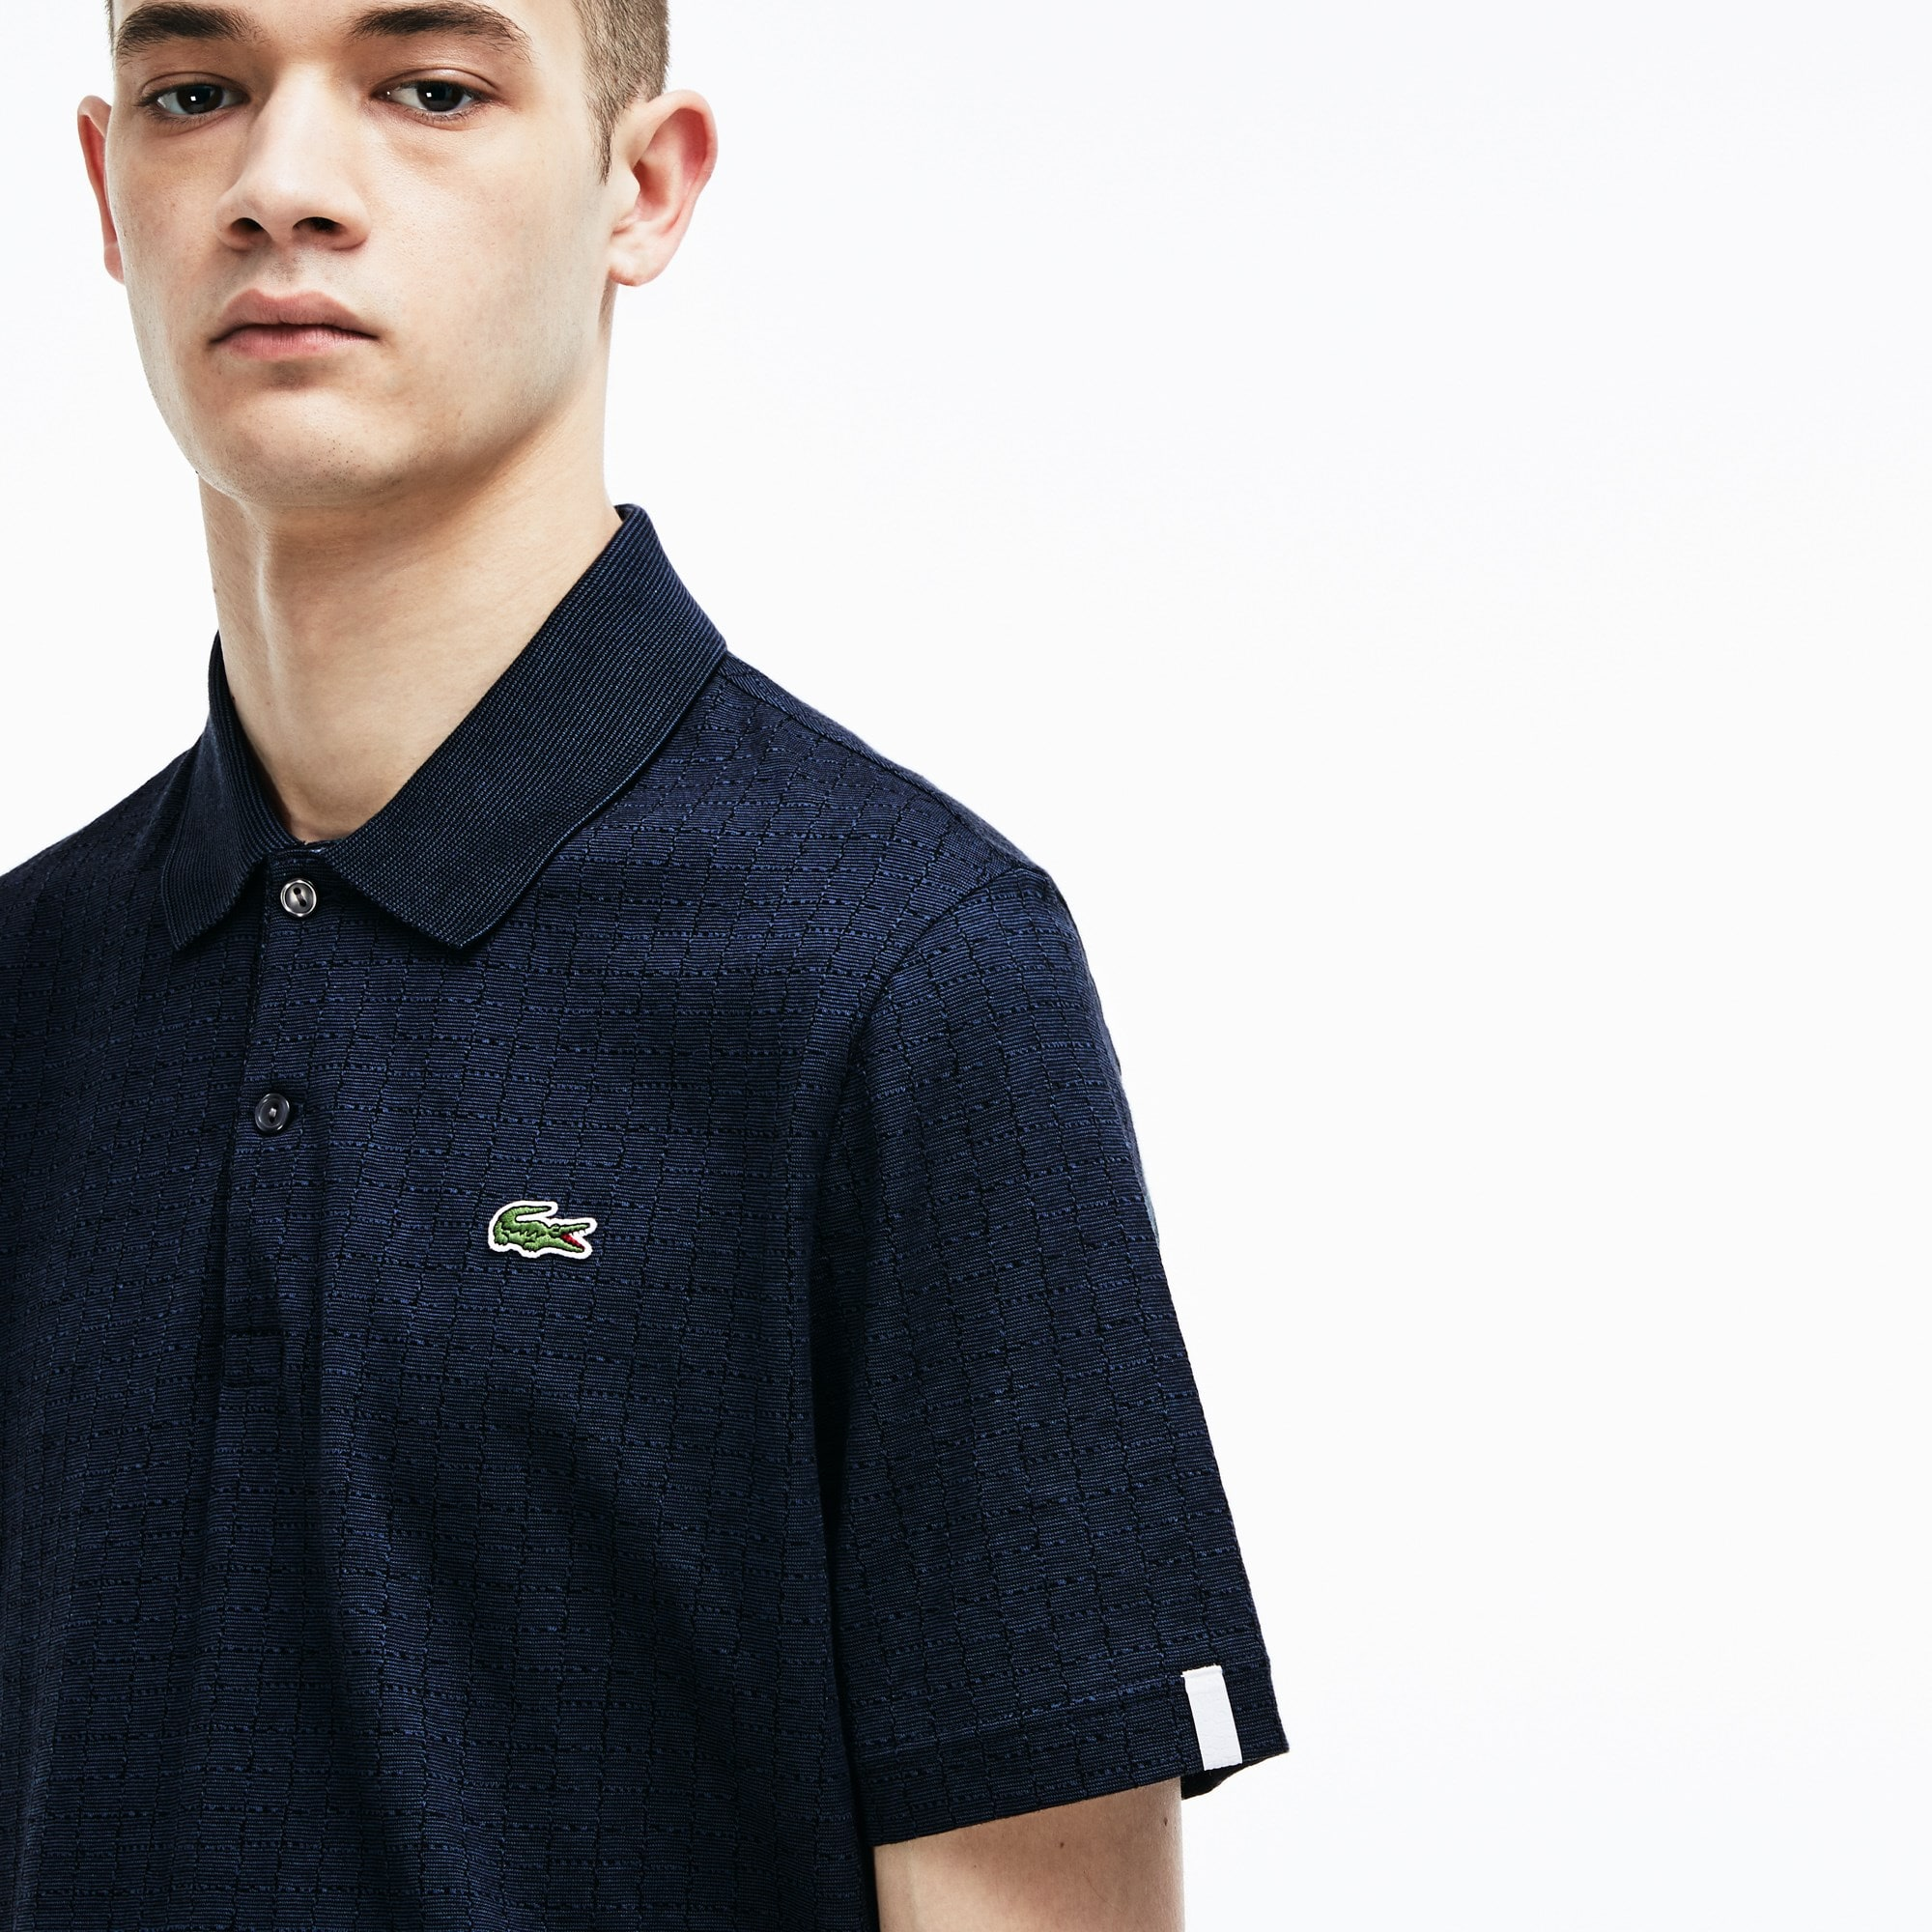 Regular Fit Herren-Polo aus bedrucktem Jacquard LACOSTE L!VE